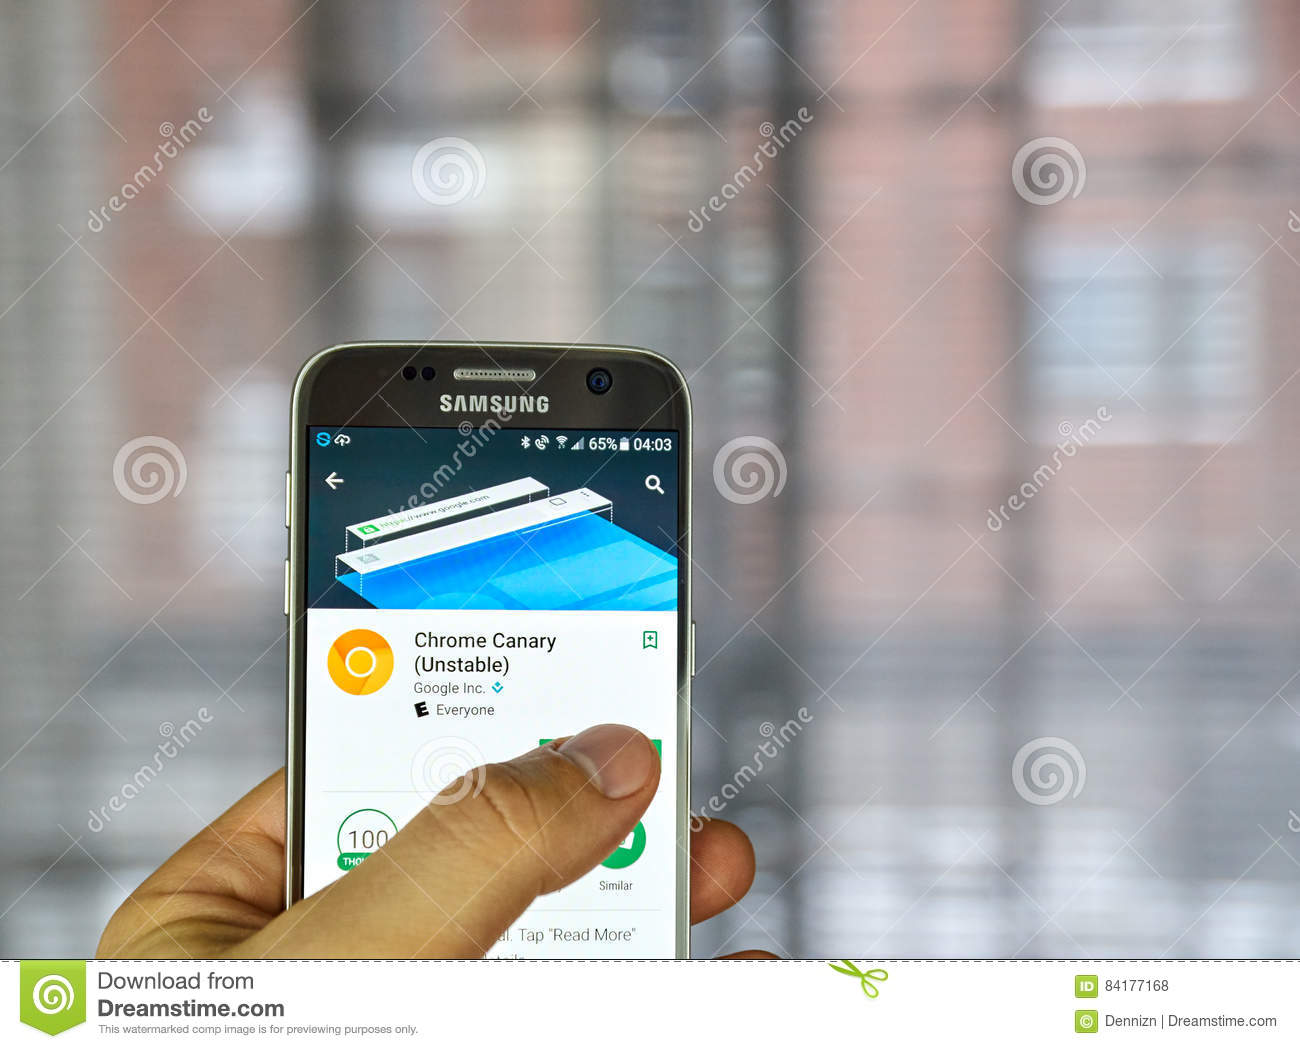 Google Crome Canary editorial stock photo  Image of build - 84177168